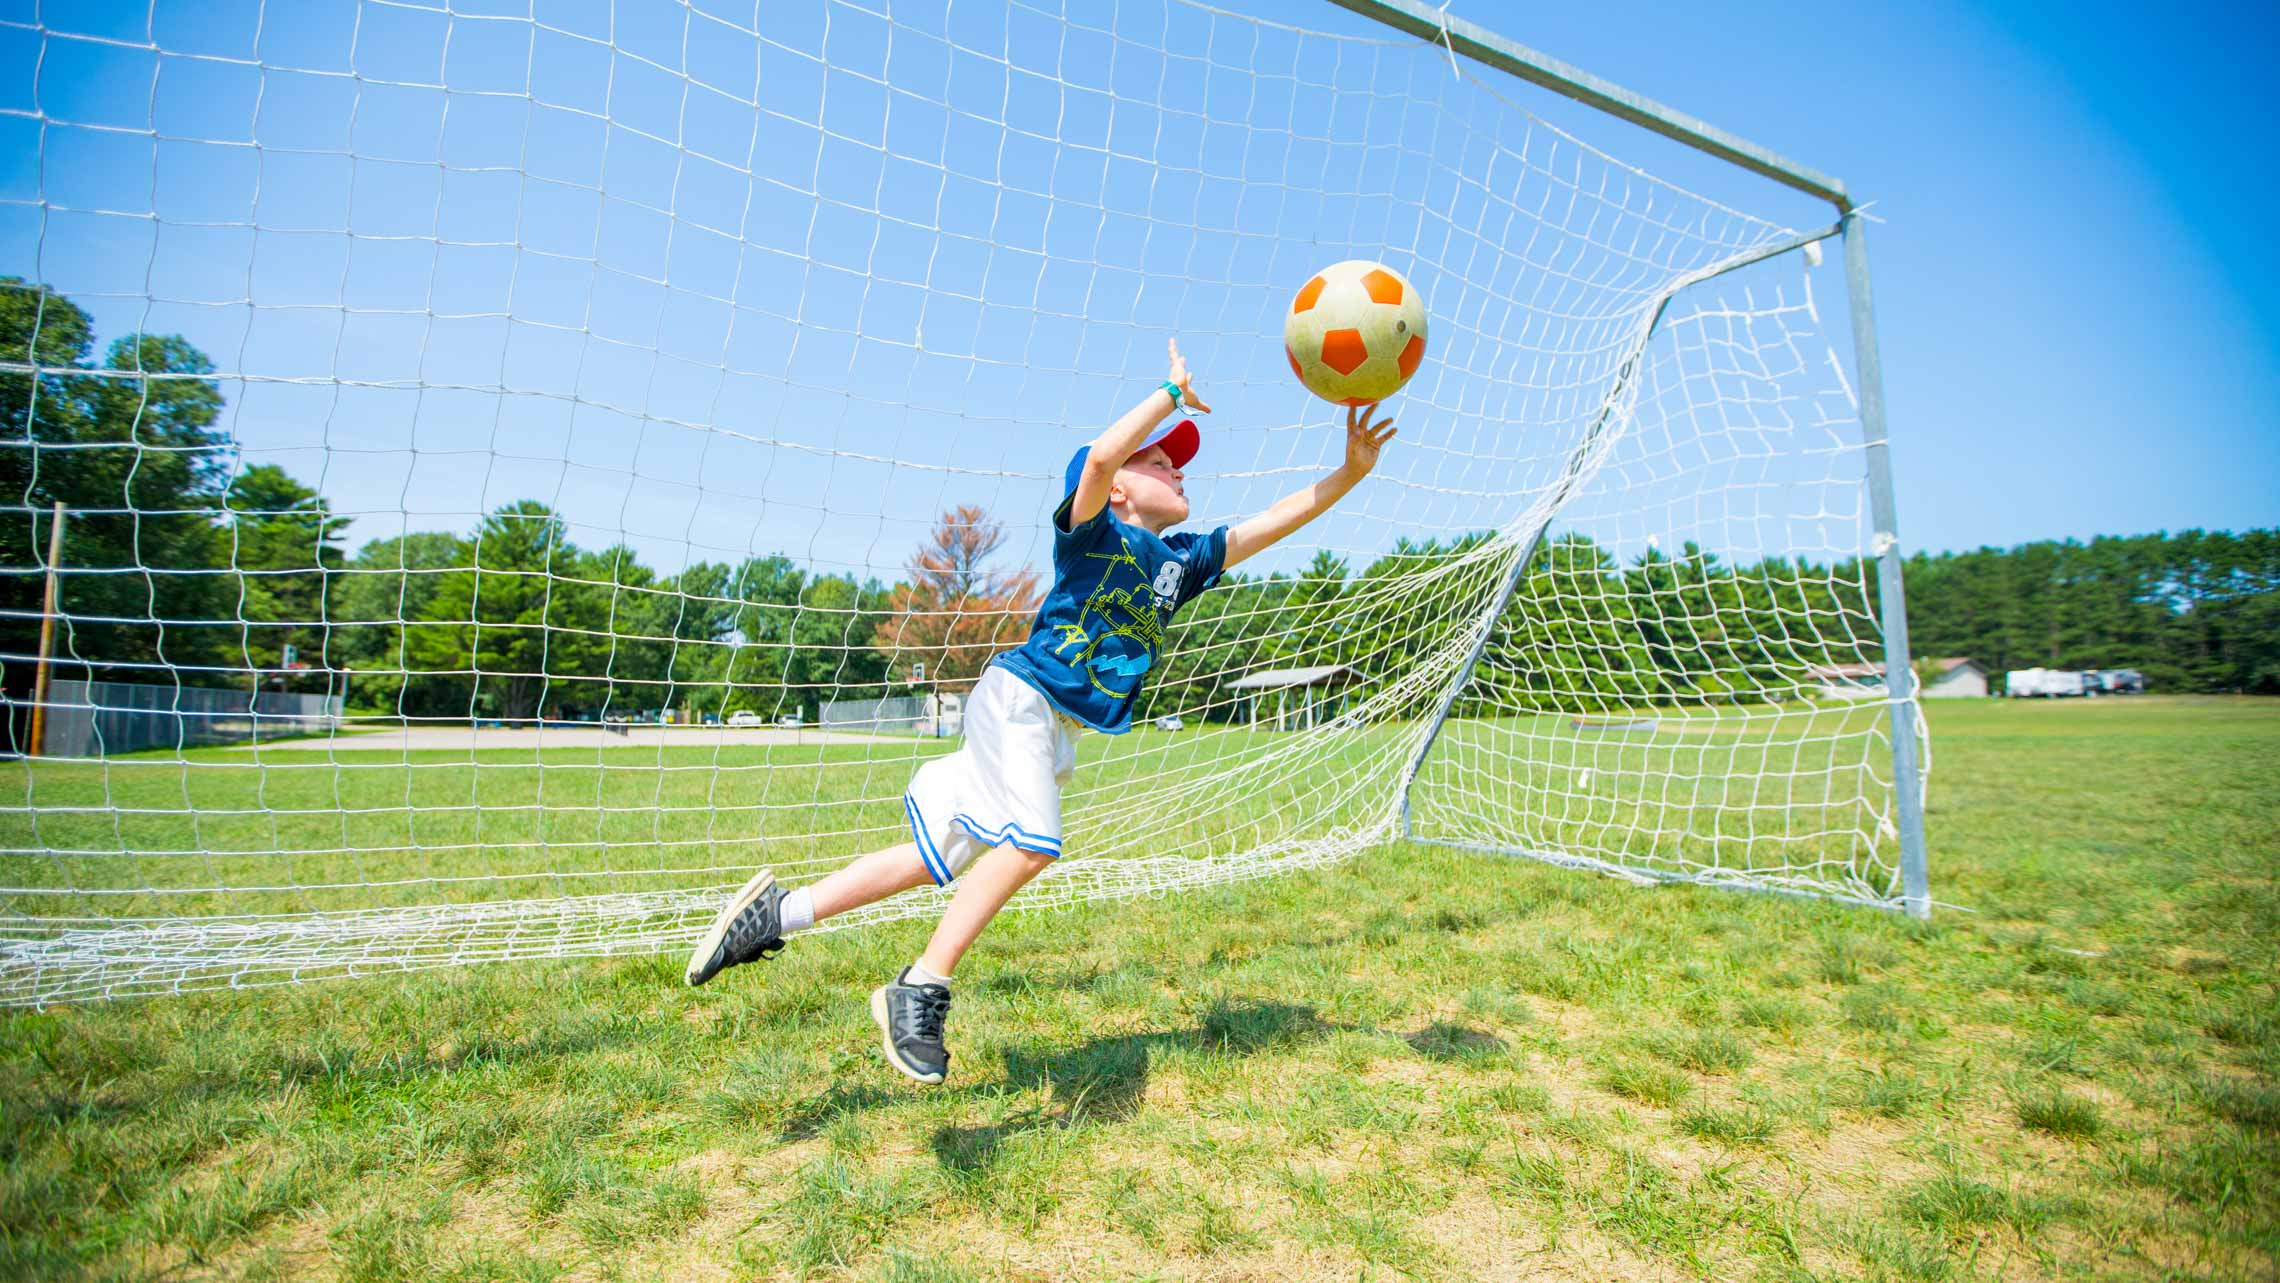 Goalie diving for soccer ball